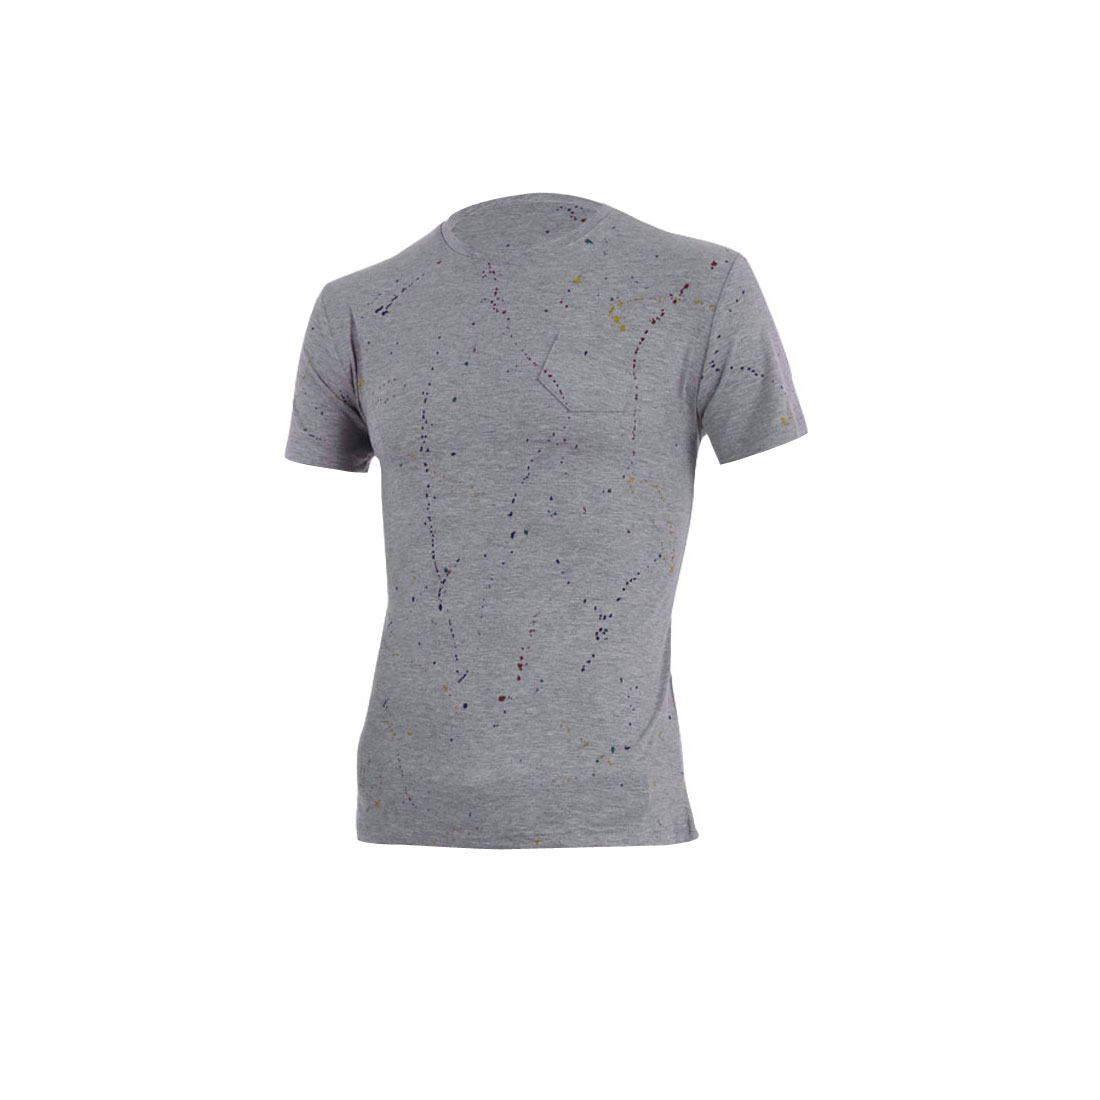 Pullover Style Breast Pocket Round Neck Gray T-shirt for Men M